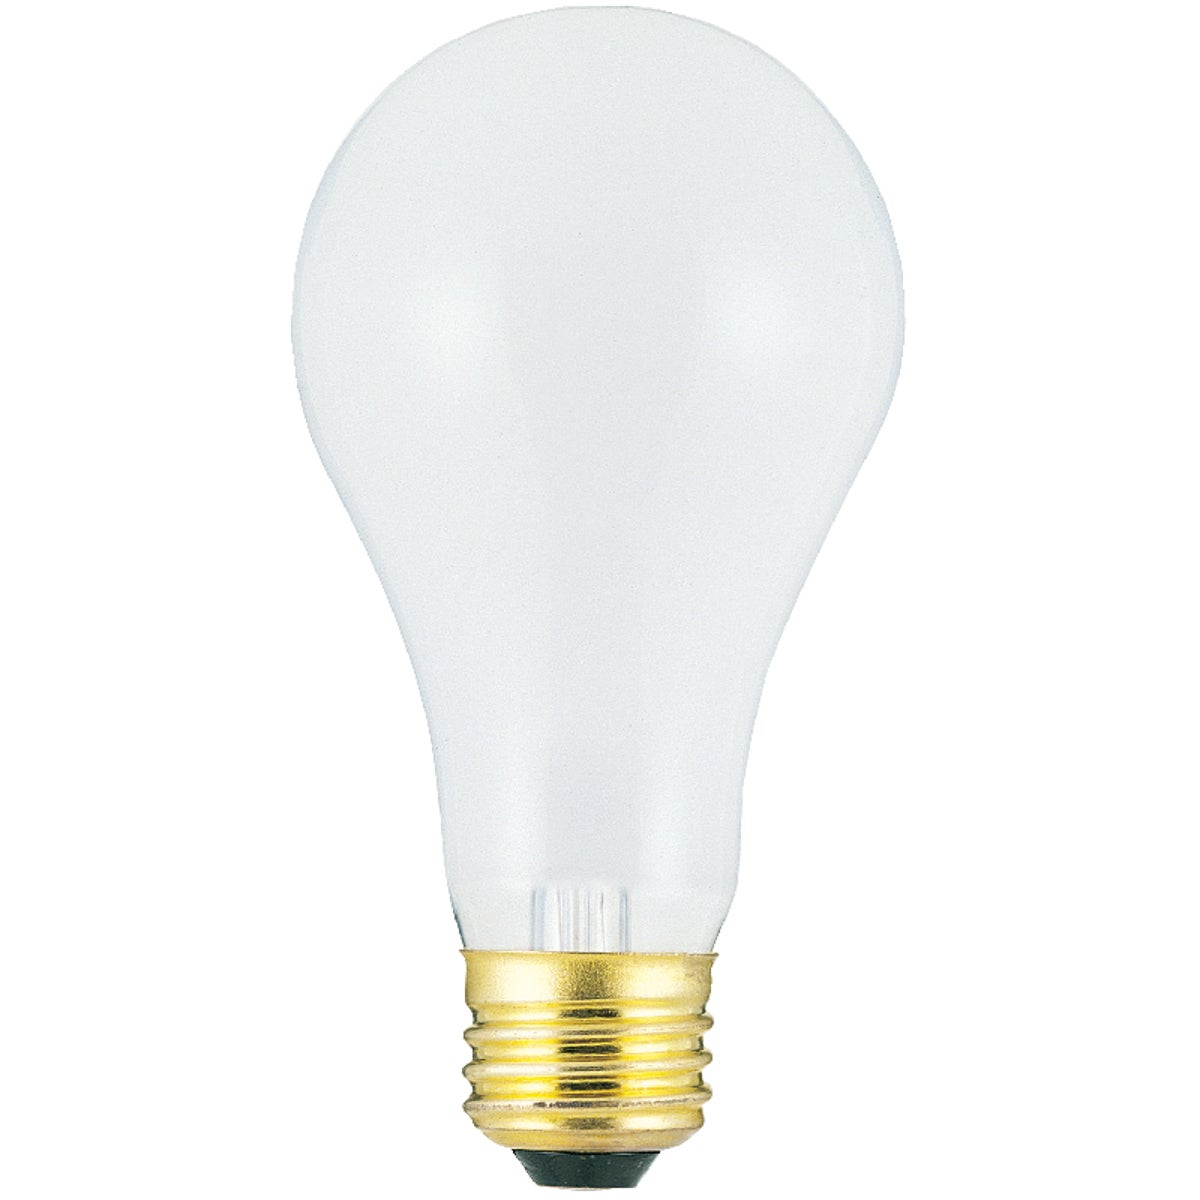 150W MEDIUM FROSTED BULB - 36959 by Westinghouse Lightng